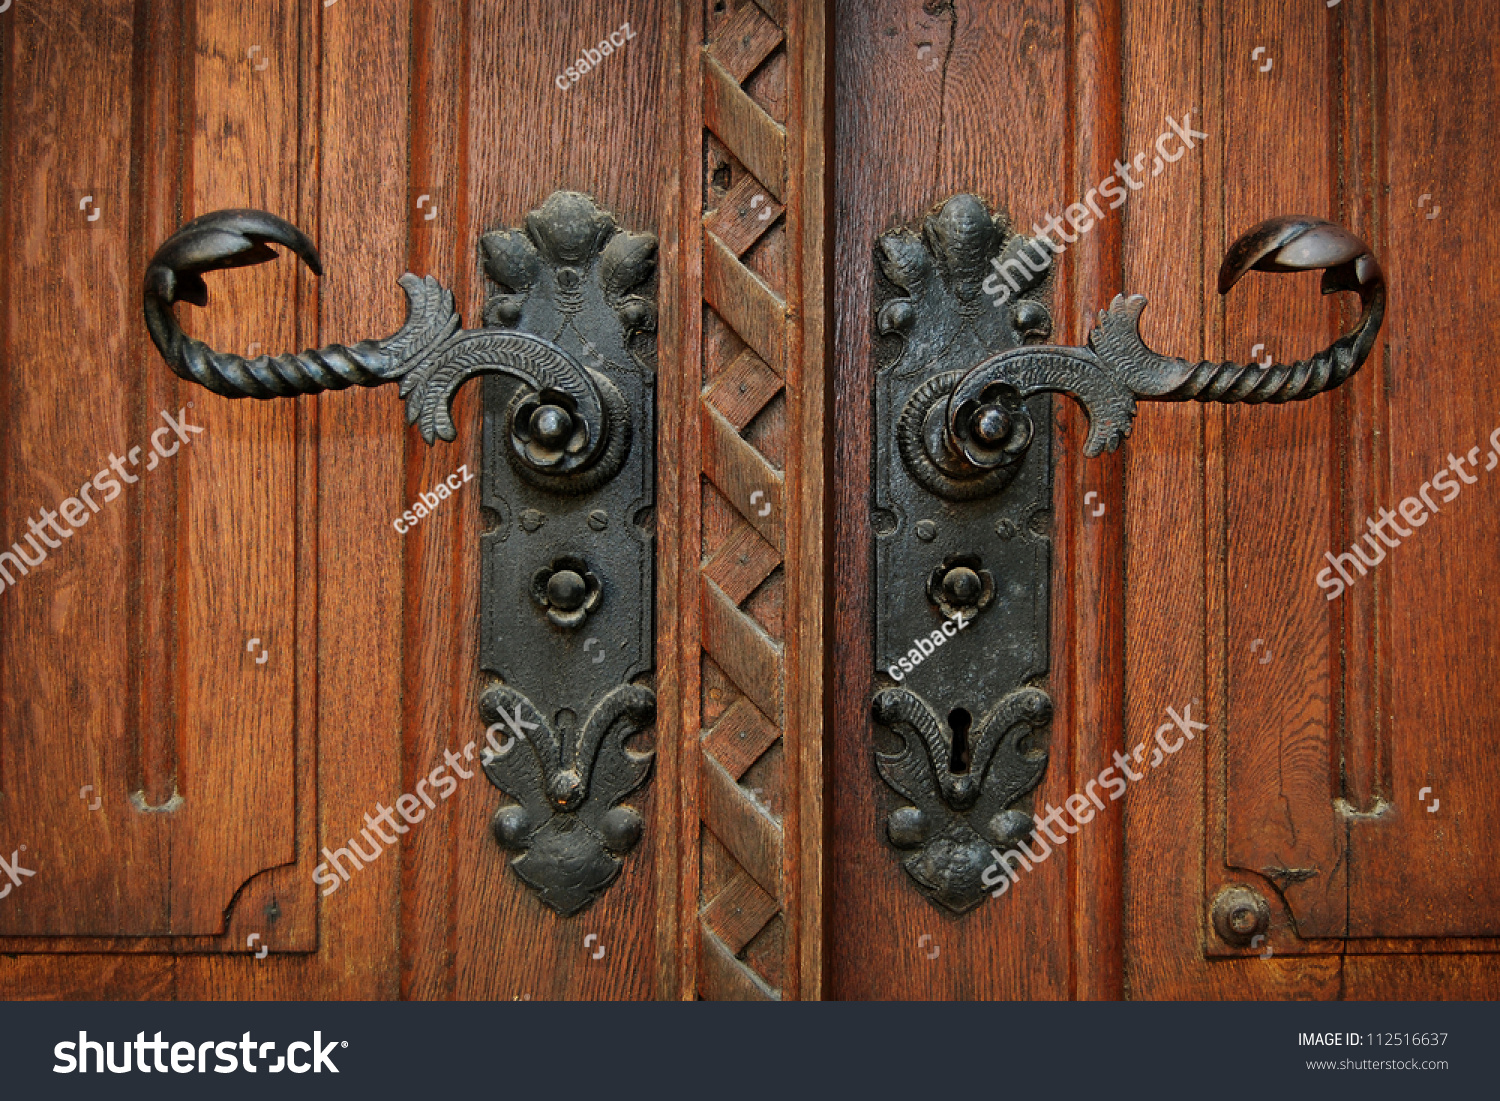 Antique door handles - Antique Door Handles Stock Photo 112516637 - Shutterstock